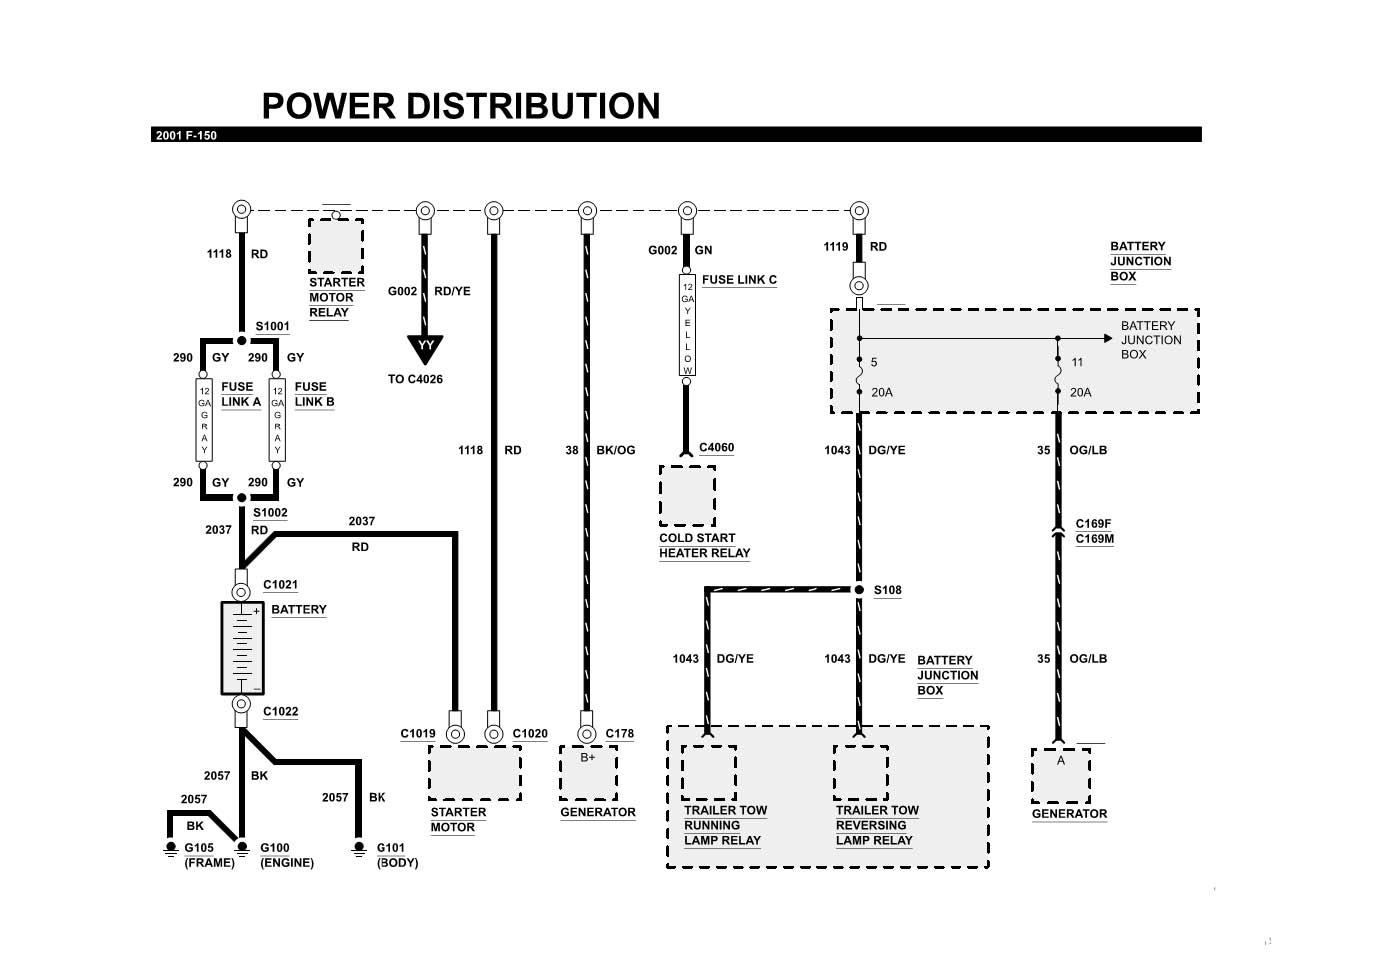 99 04 mustang pats wiring diagram   33 wiring diagram